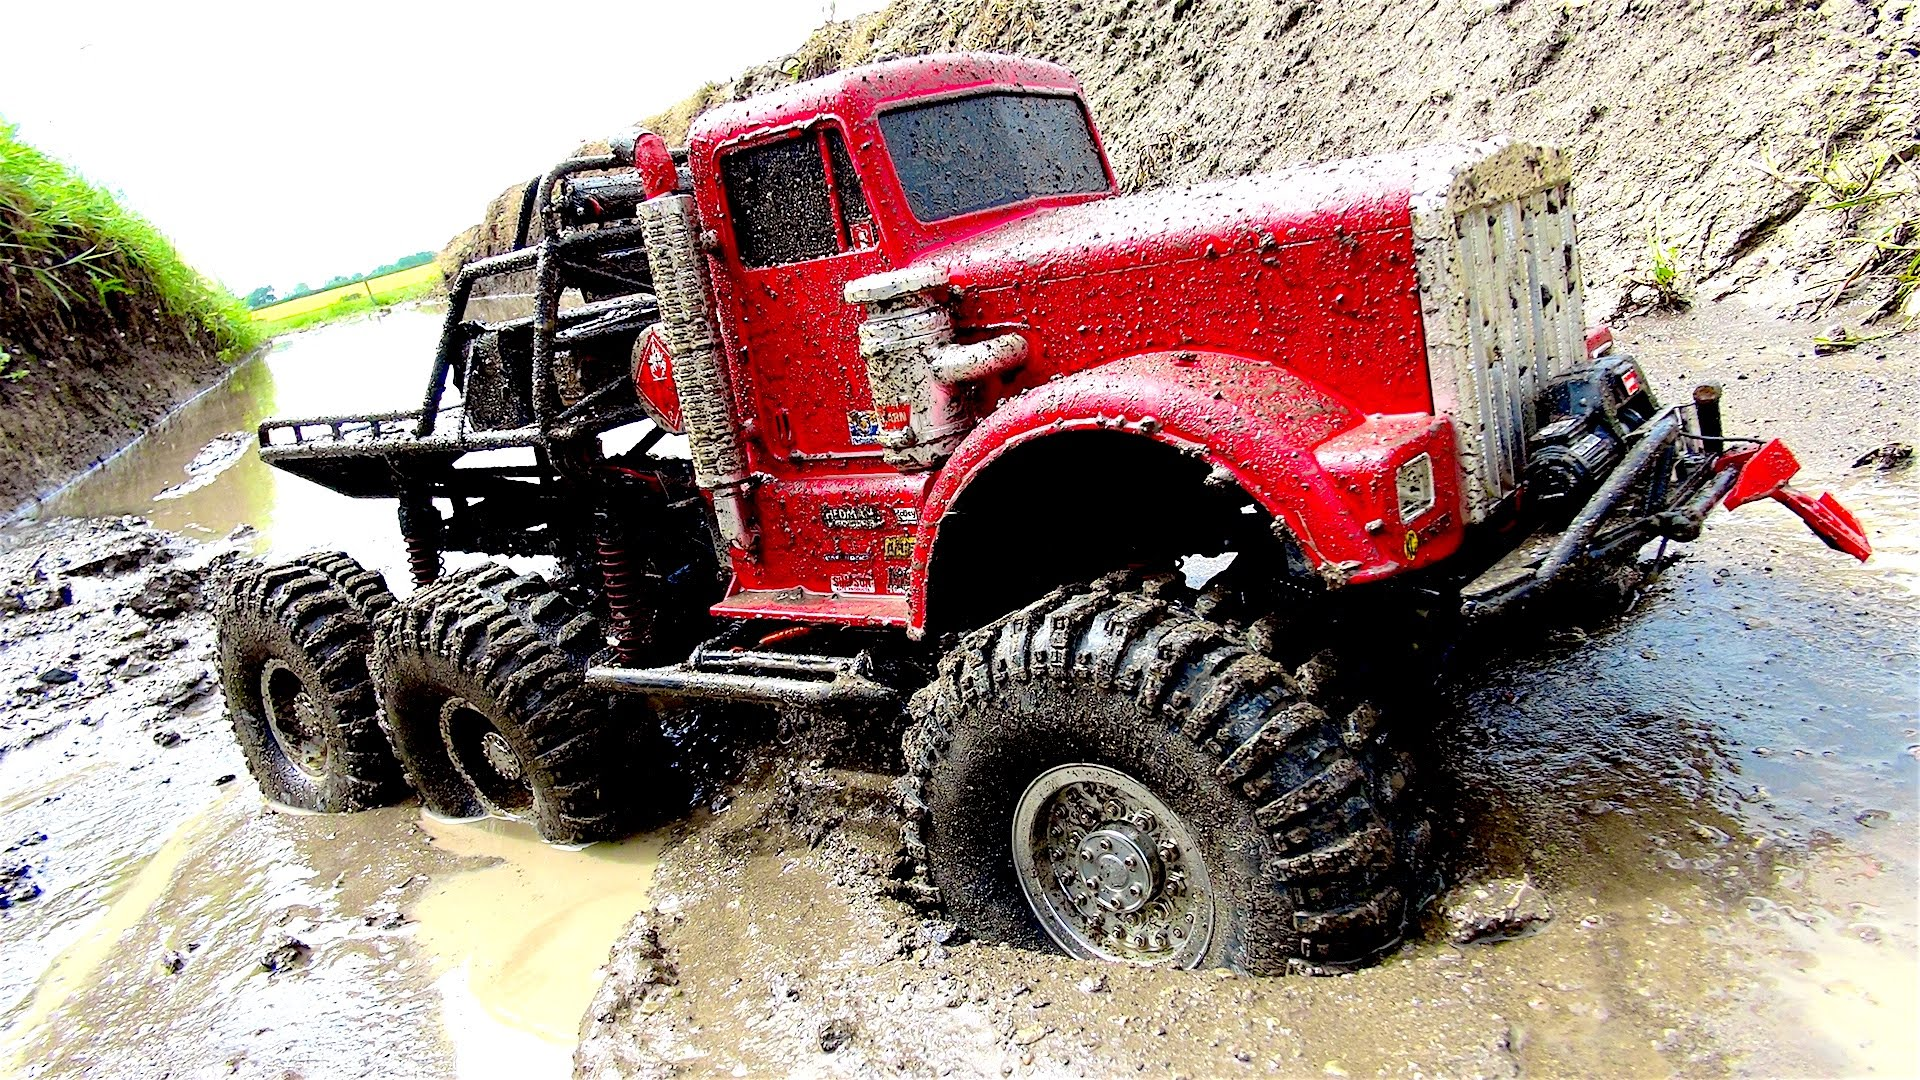 Big Red 6x6 Off Road Mud Action By Insane Rc Truck Will Blow You